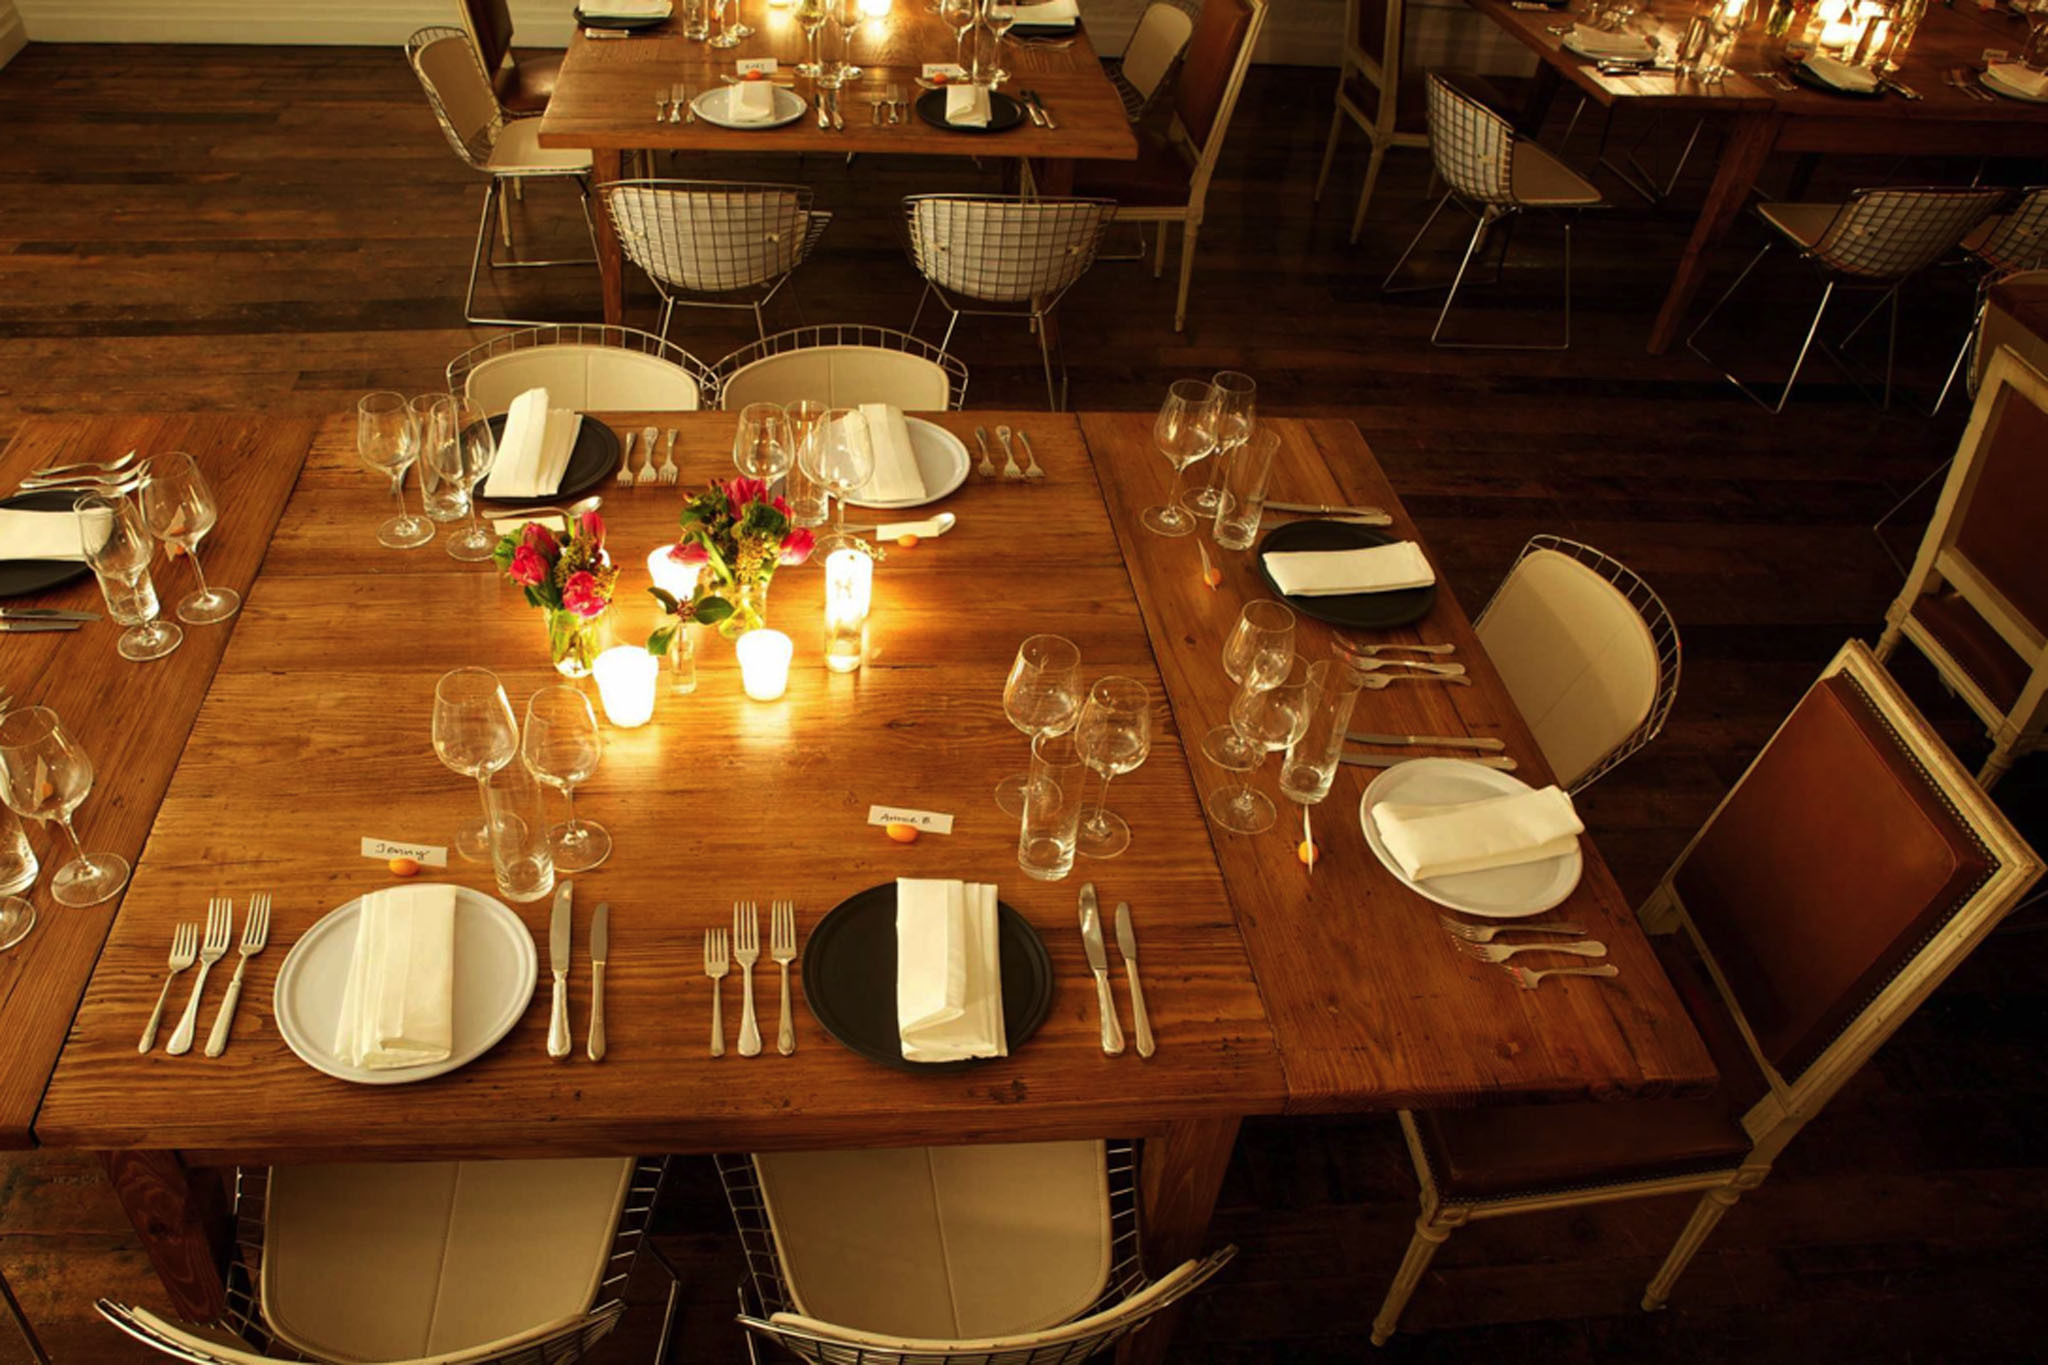 Anniversary Date Ideas In NYC For A Romantic Dinner Or Fun Event